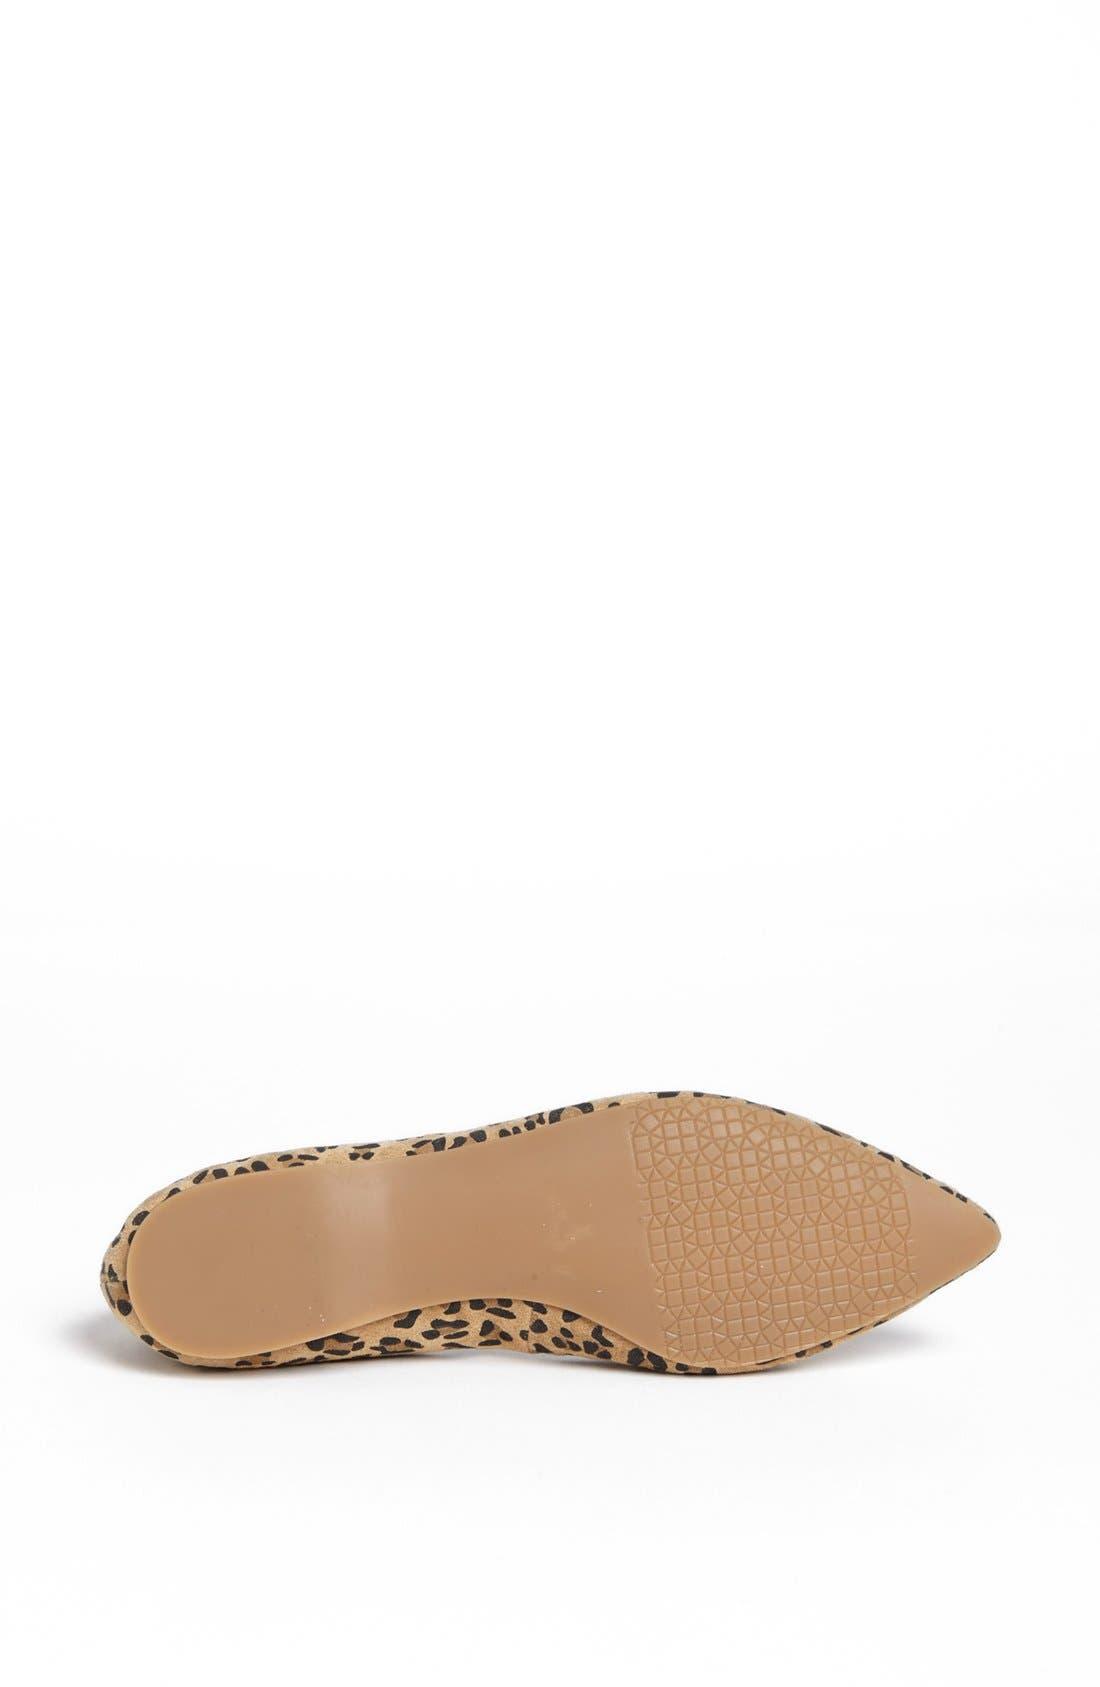 'Moveover' Pointy Toe Flat,                             Alternate thumbnail 44, color,